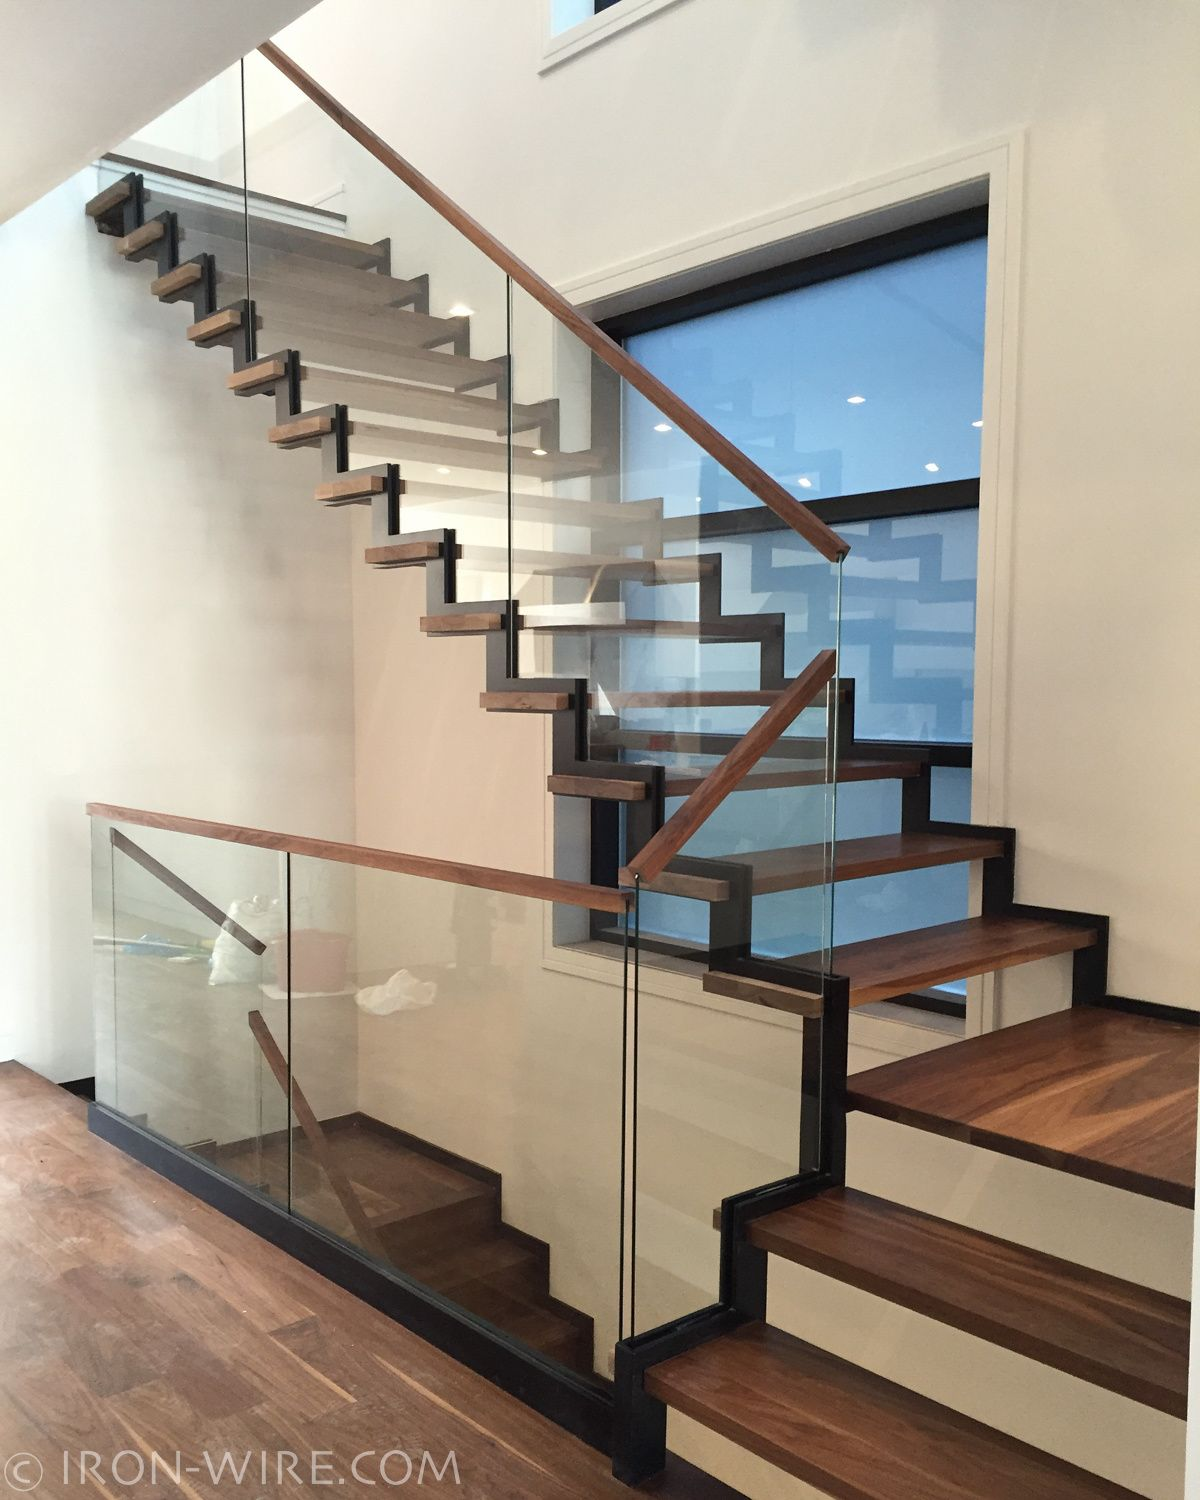 Best Pin By Darian Campise On New House Barandillas Escaleras 640 x 480